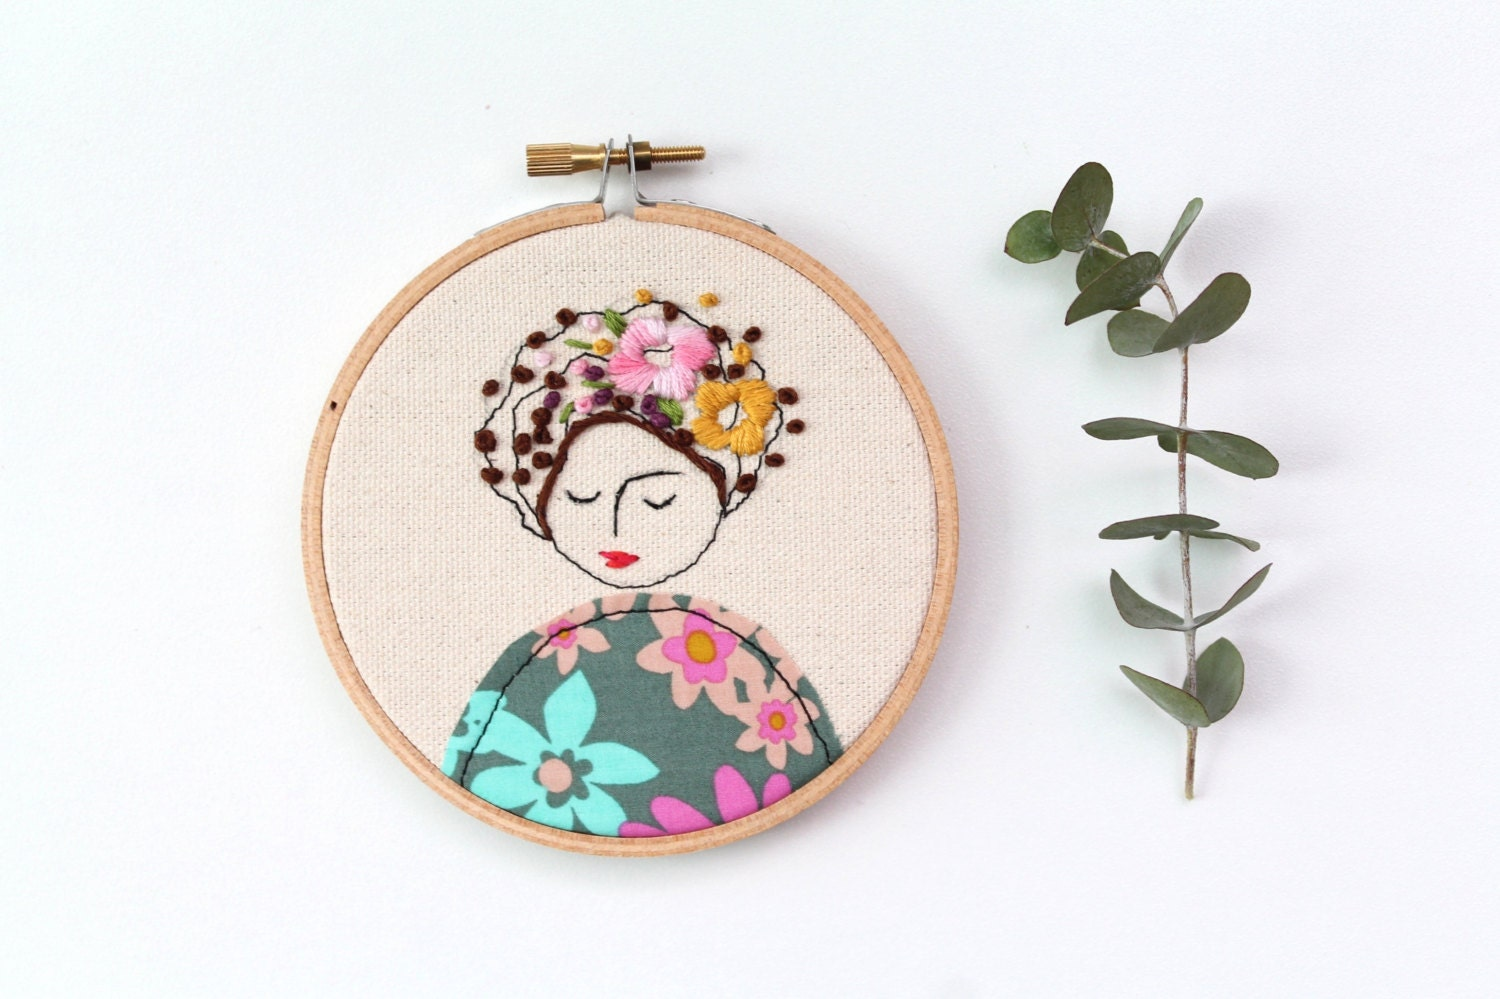 Embroidery hoop art embroidered illustration of a girl hand